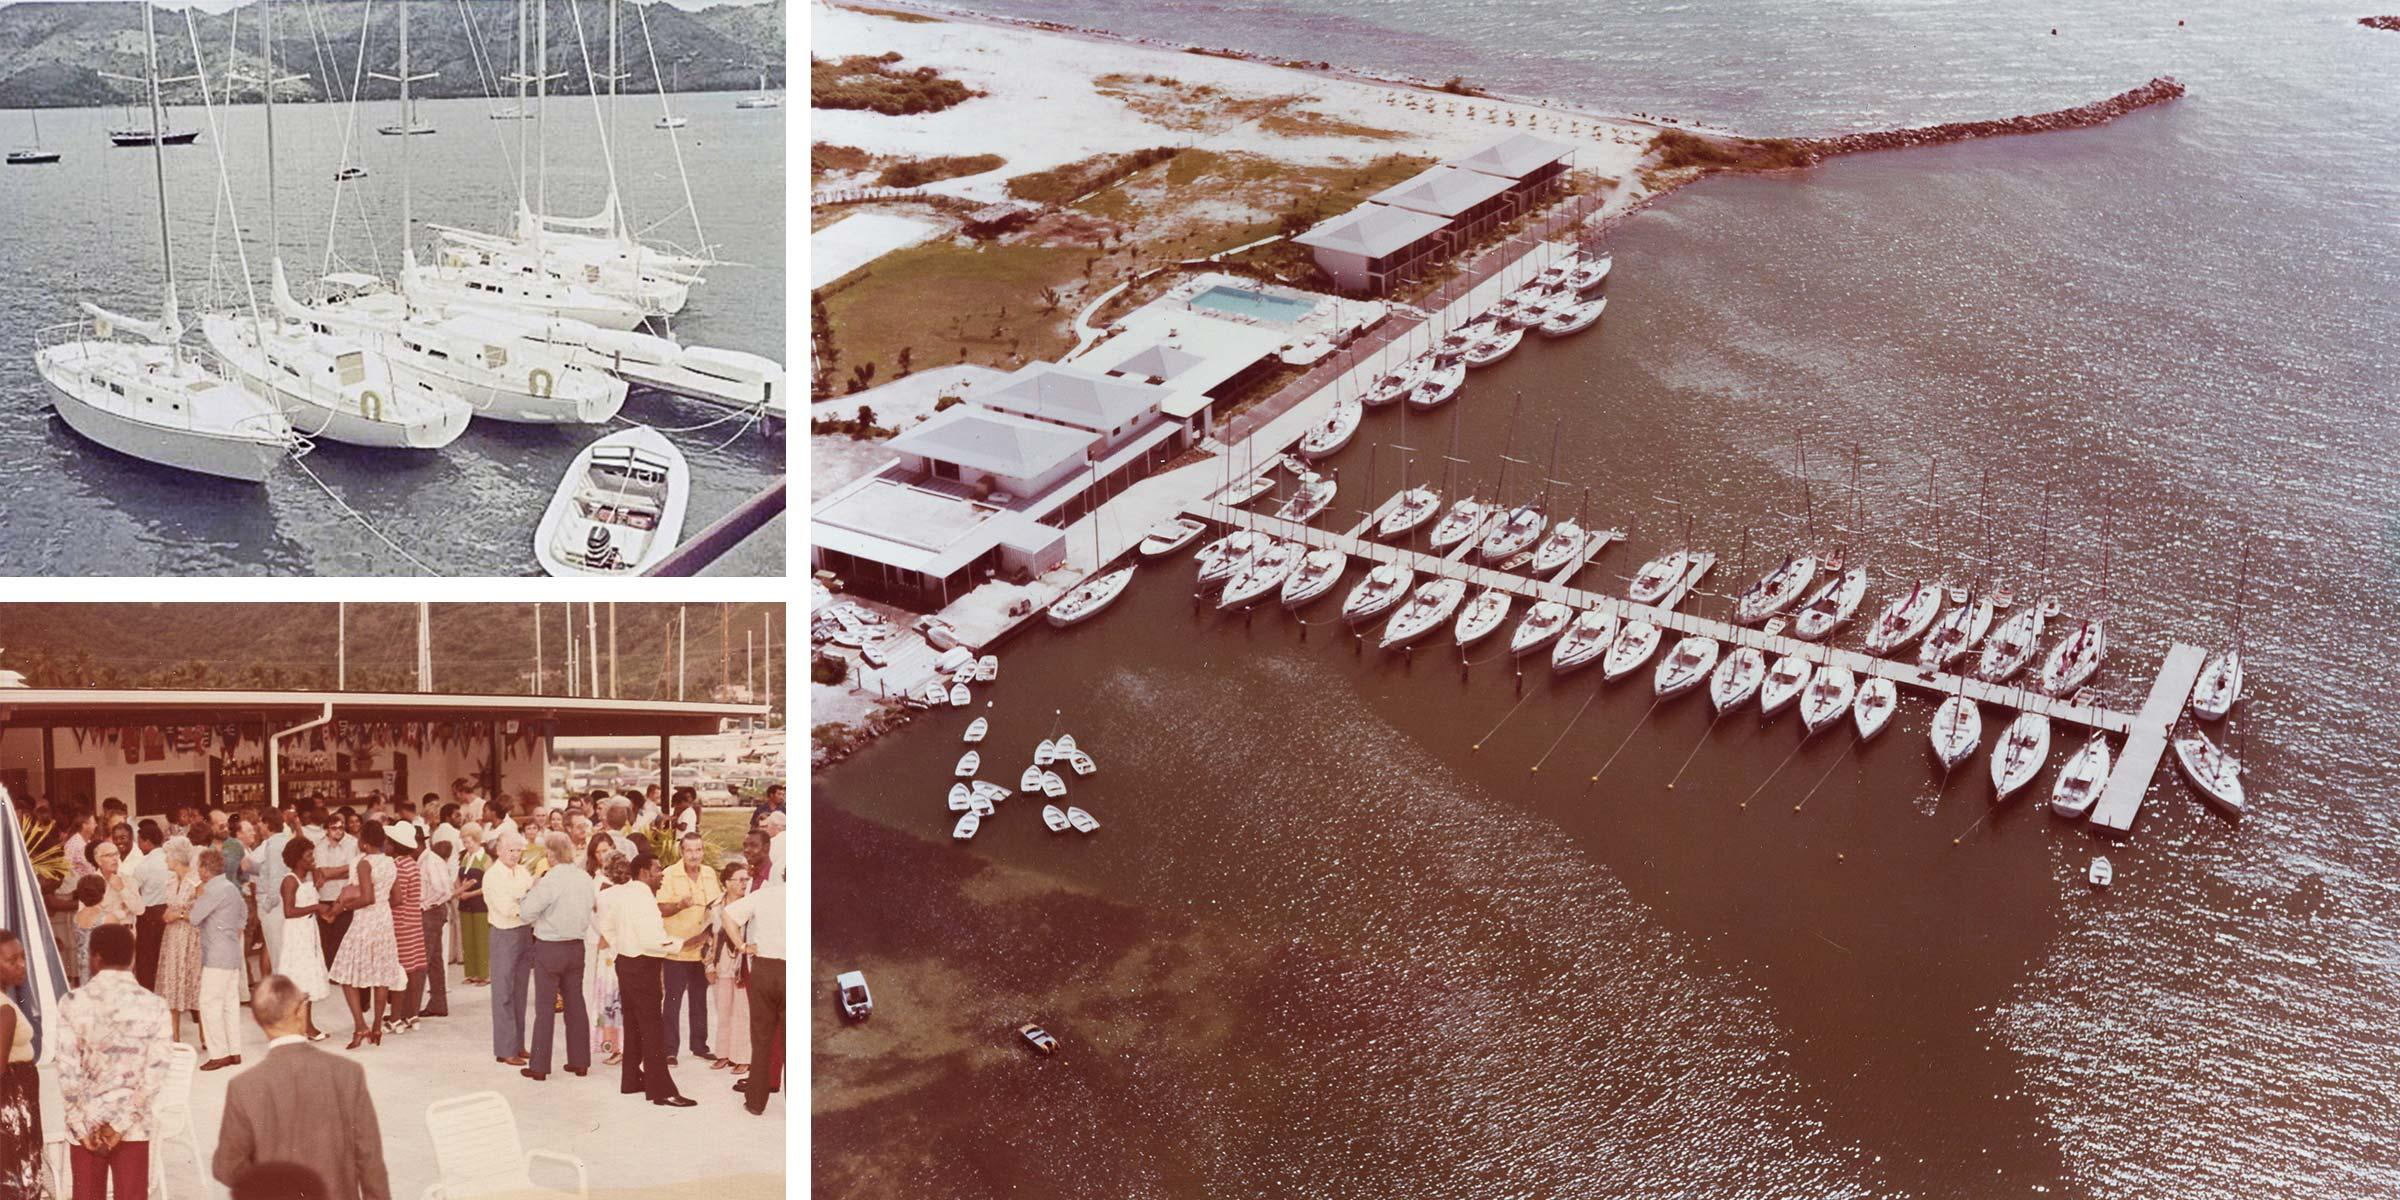 The Moorings BVI base in the 1970s and 80s